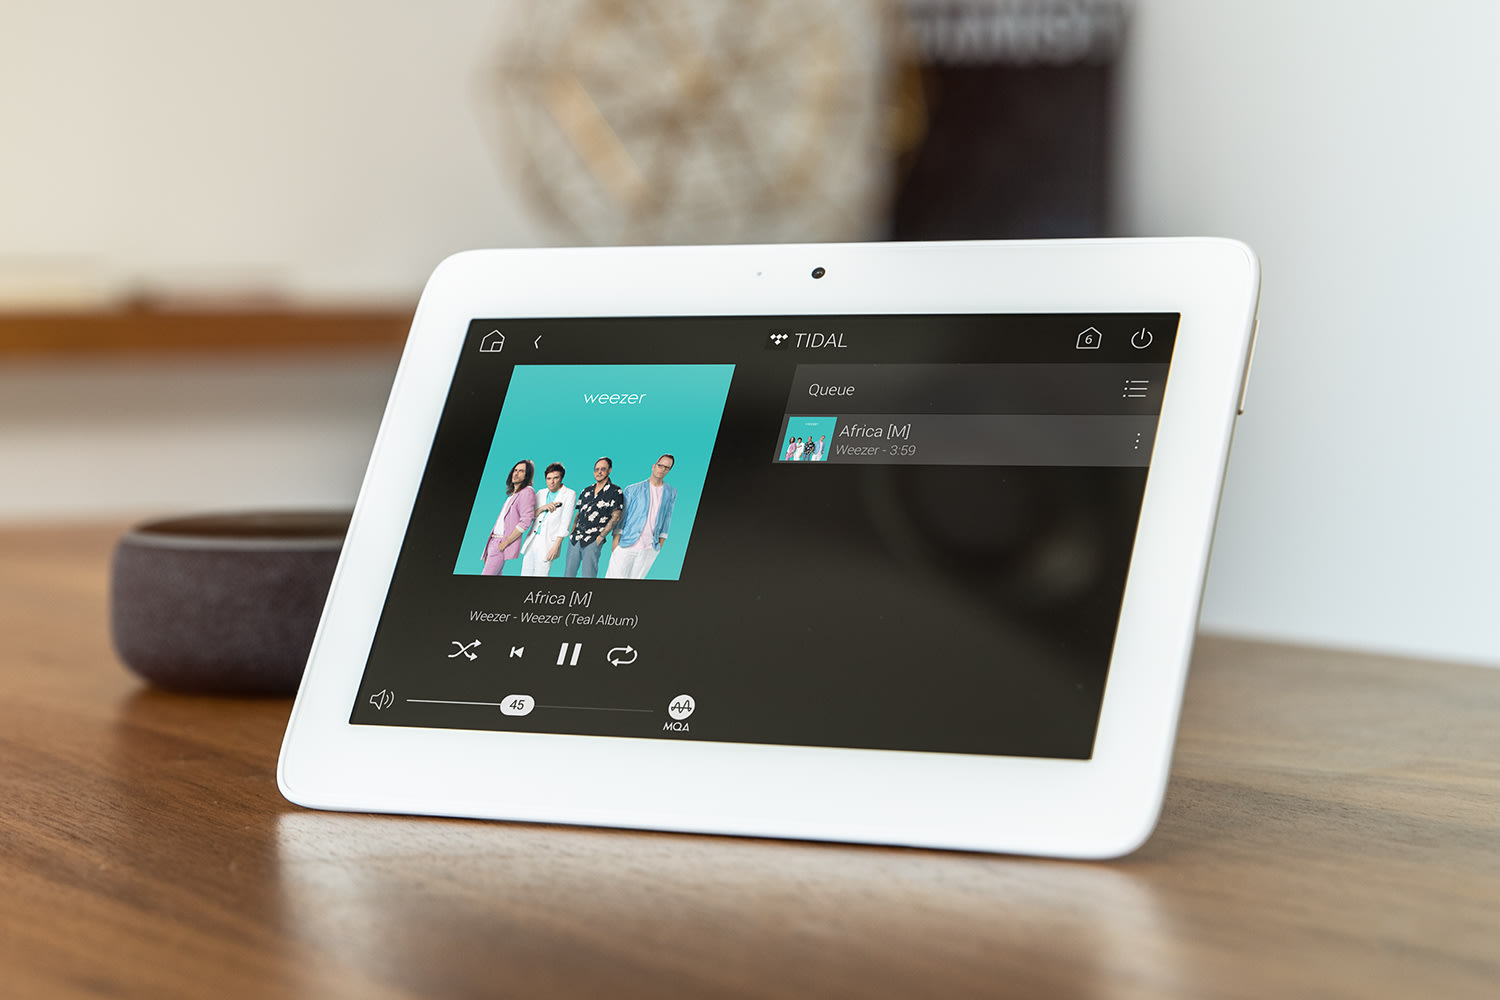 Tabletop touch screen displaying Tidal streaming music service